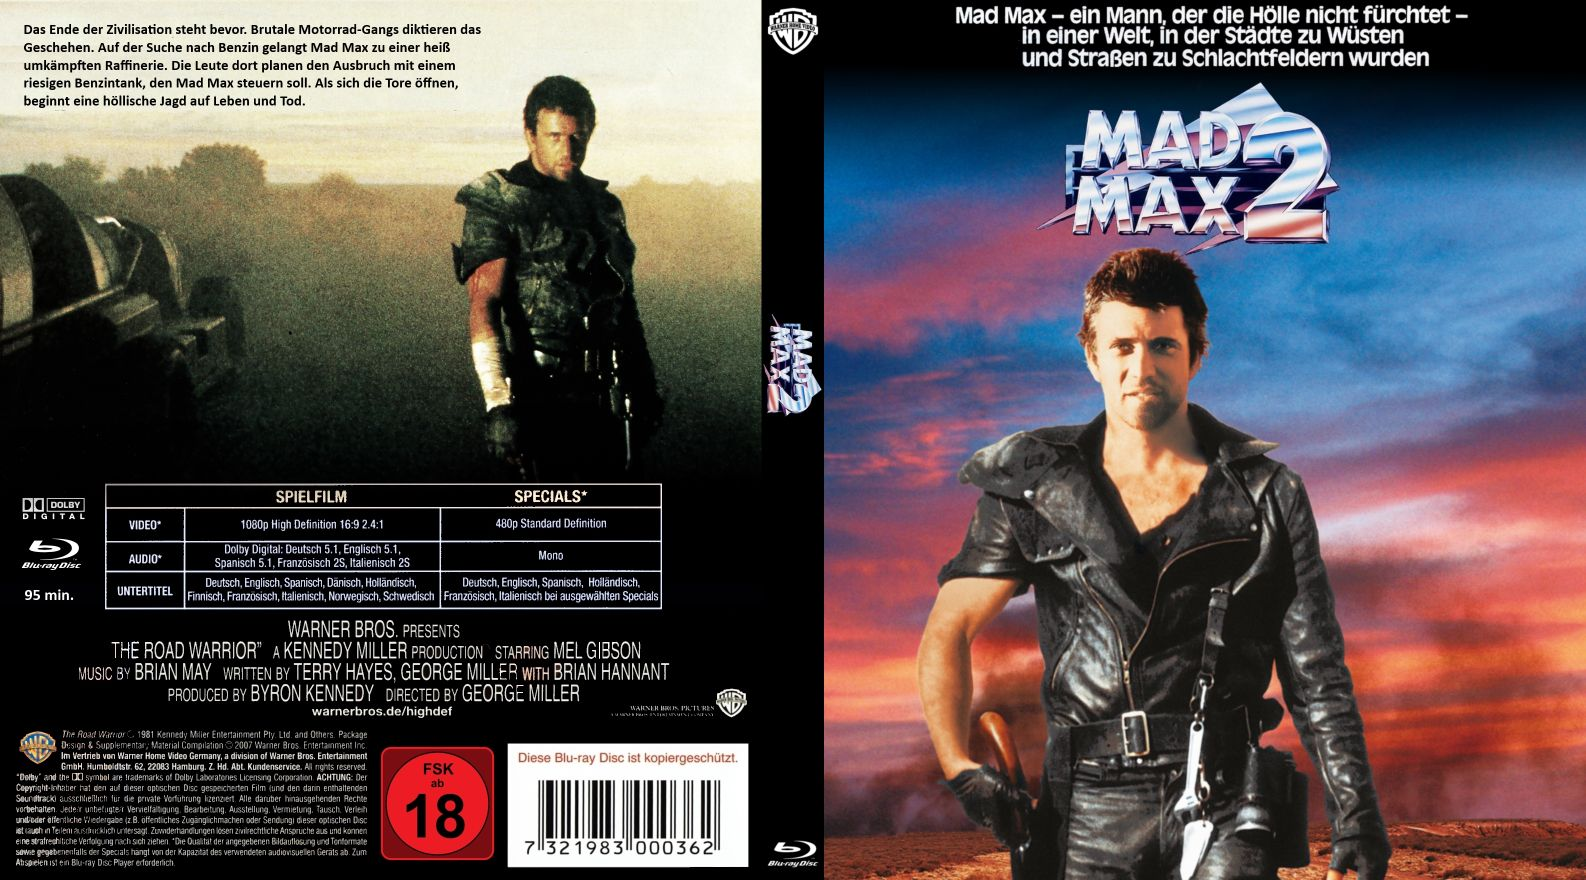 mad max 2 version 3 | DVD Covers | Cover Century | Over 500.000 Album Art  covers for free